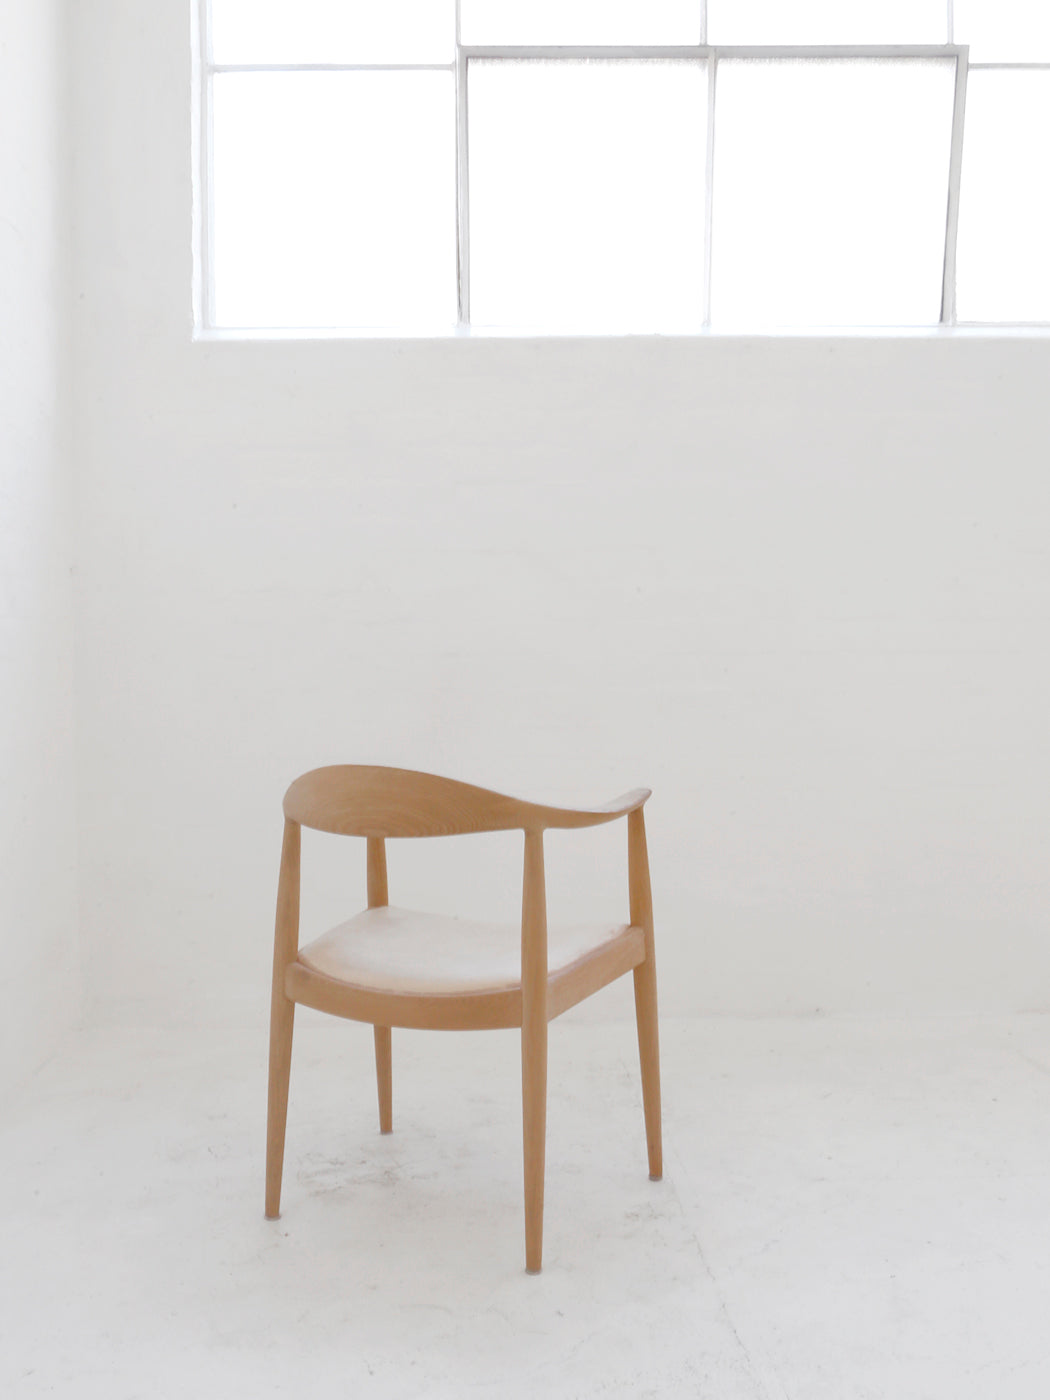 Hans J. Wegner 'Model 503' Chair